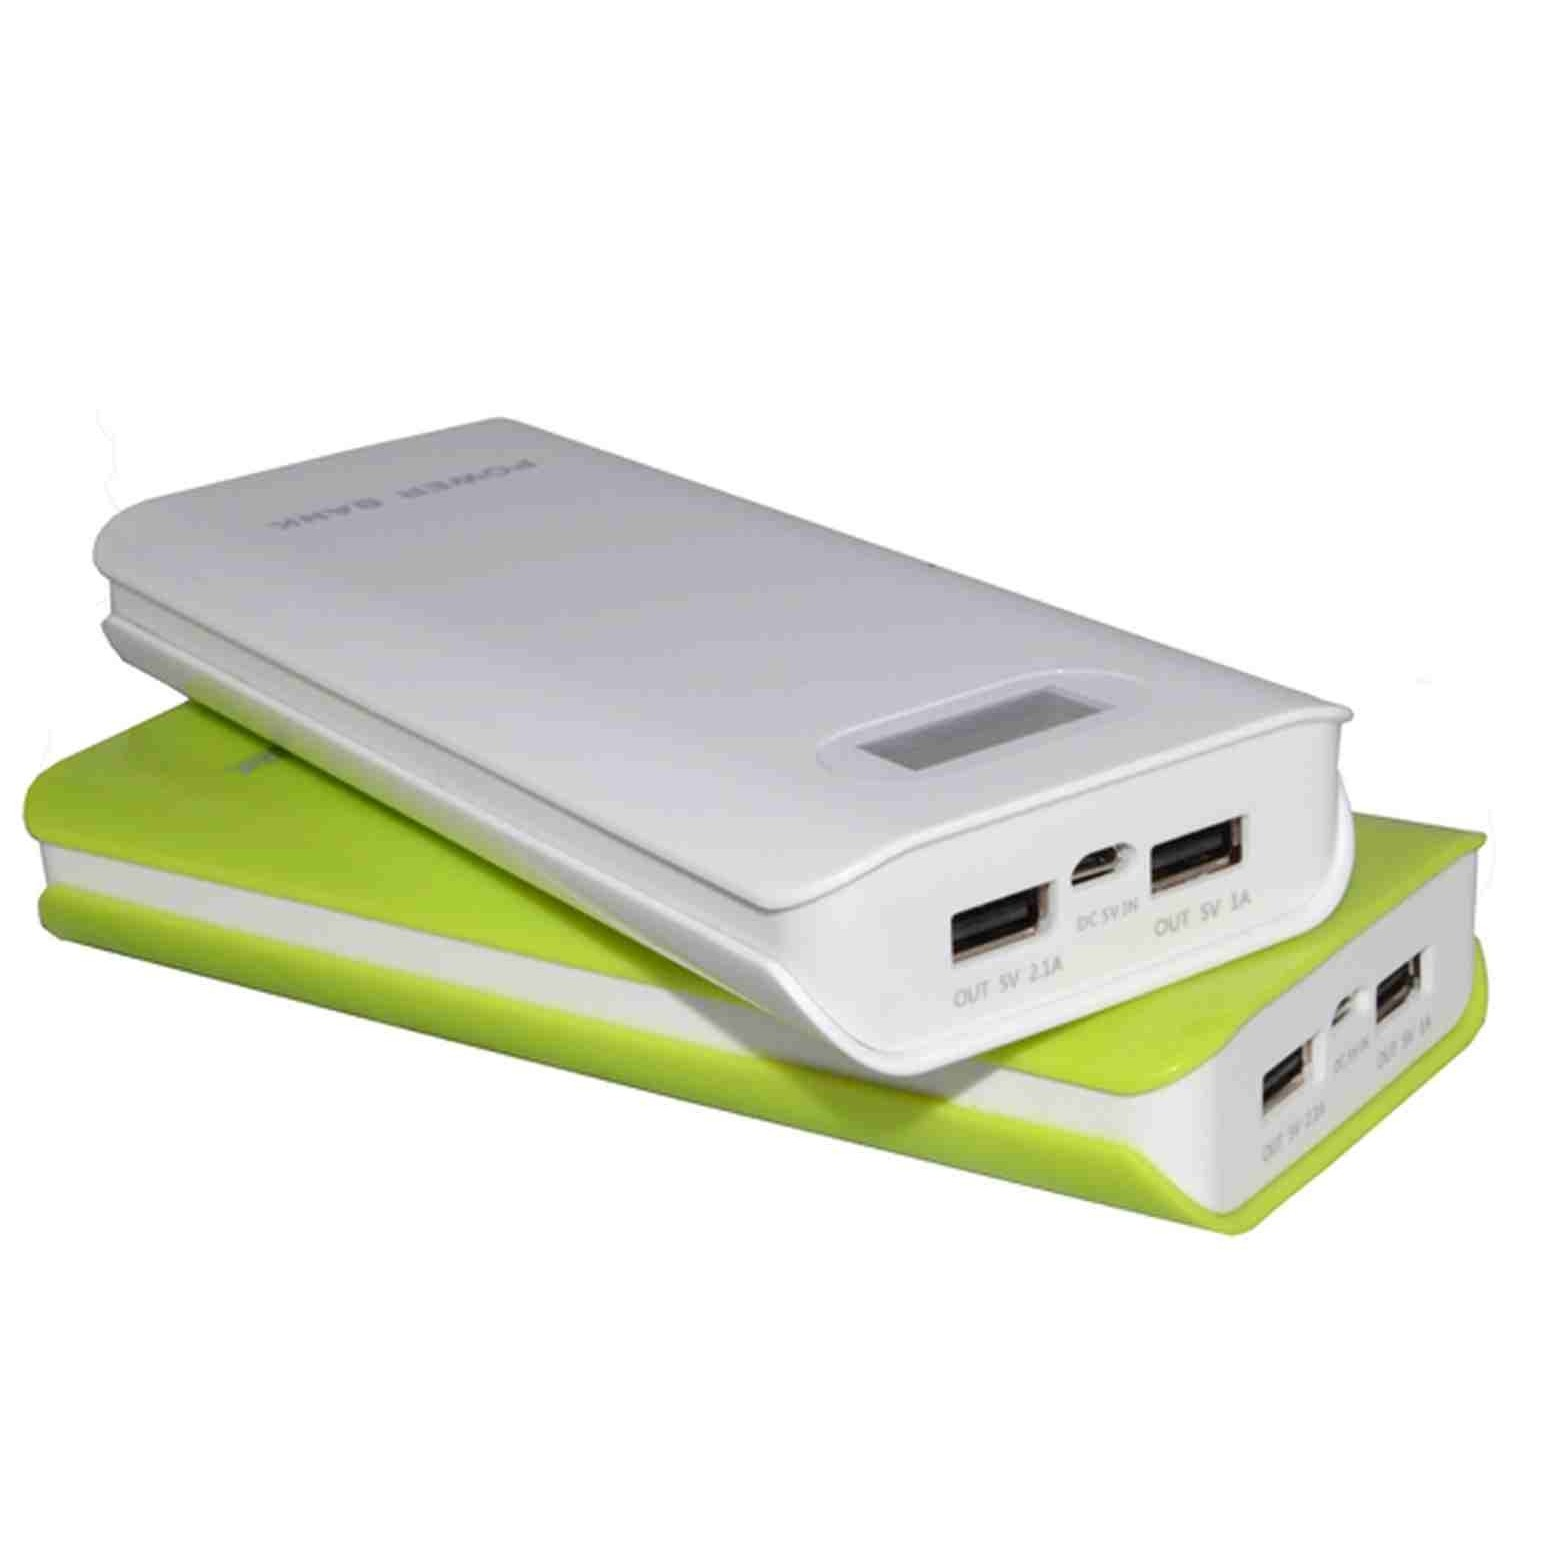 10000mah Power Bank Portable Charger For Nokia 1661 in addition Charger For Coolpad Note 3 Usb Mobile Phone Wall Charger additionally 32817848776 moreover Battery Charger Circuit Using L200 together with The Apple Watch Laid Bare Tech Experts Timepiece Apart Reveal S Inside Including Tiny Battery. on solar battery charger parts list